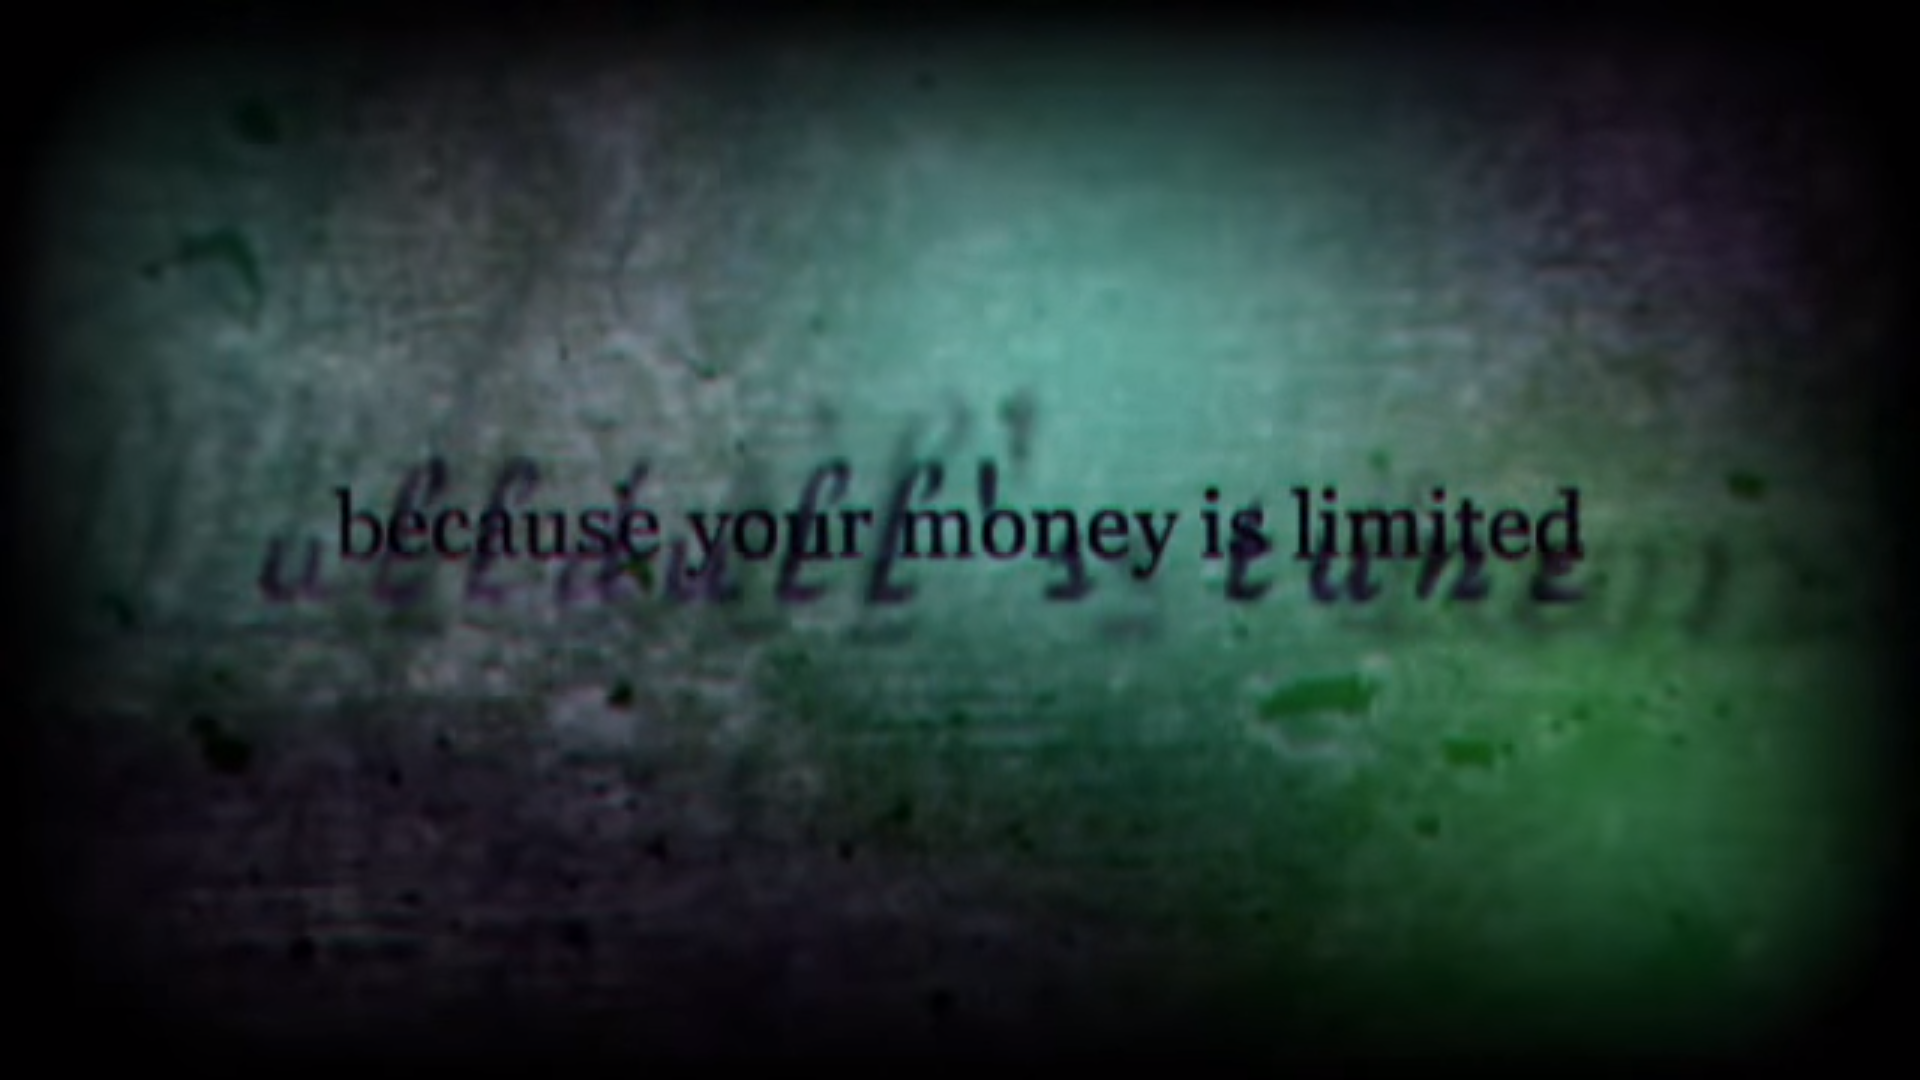 Because your money is limited